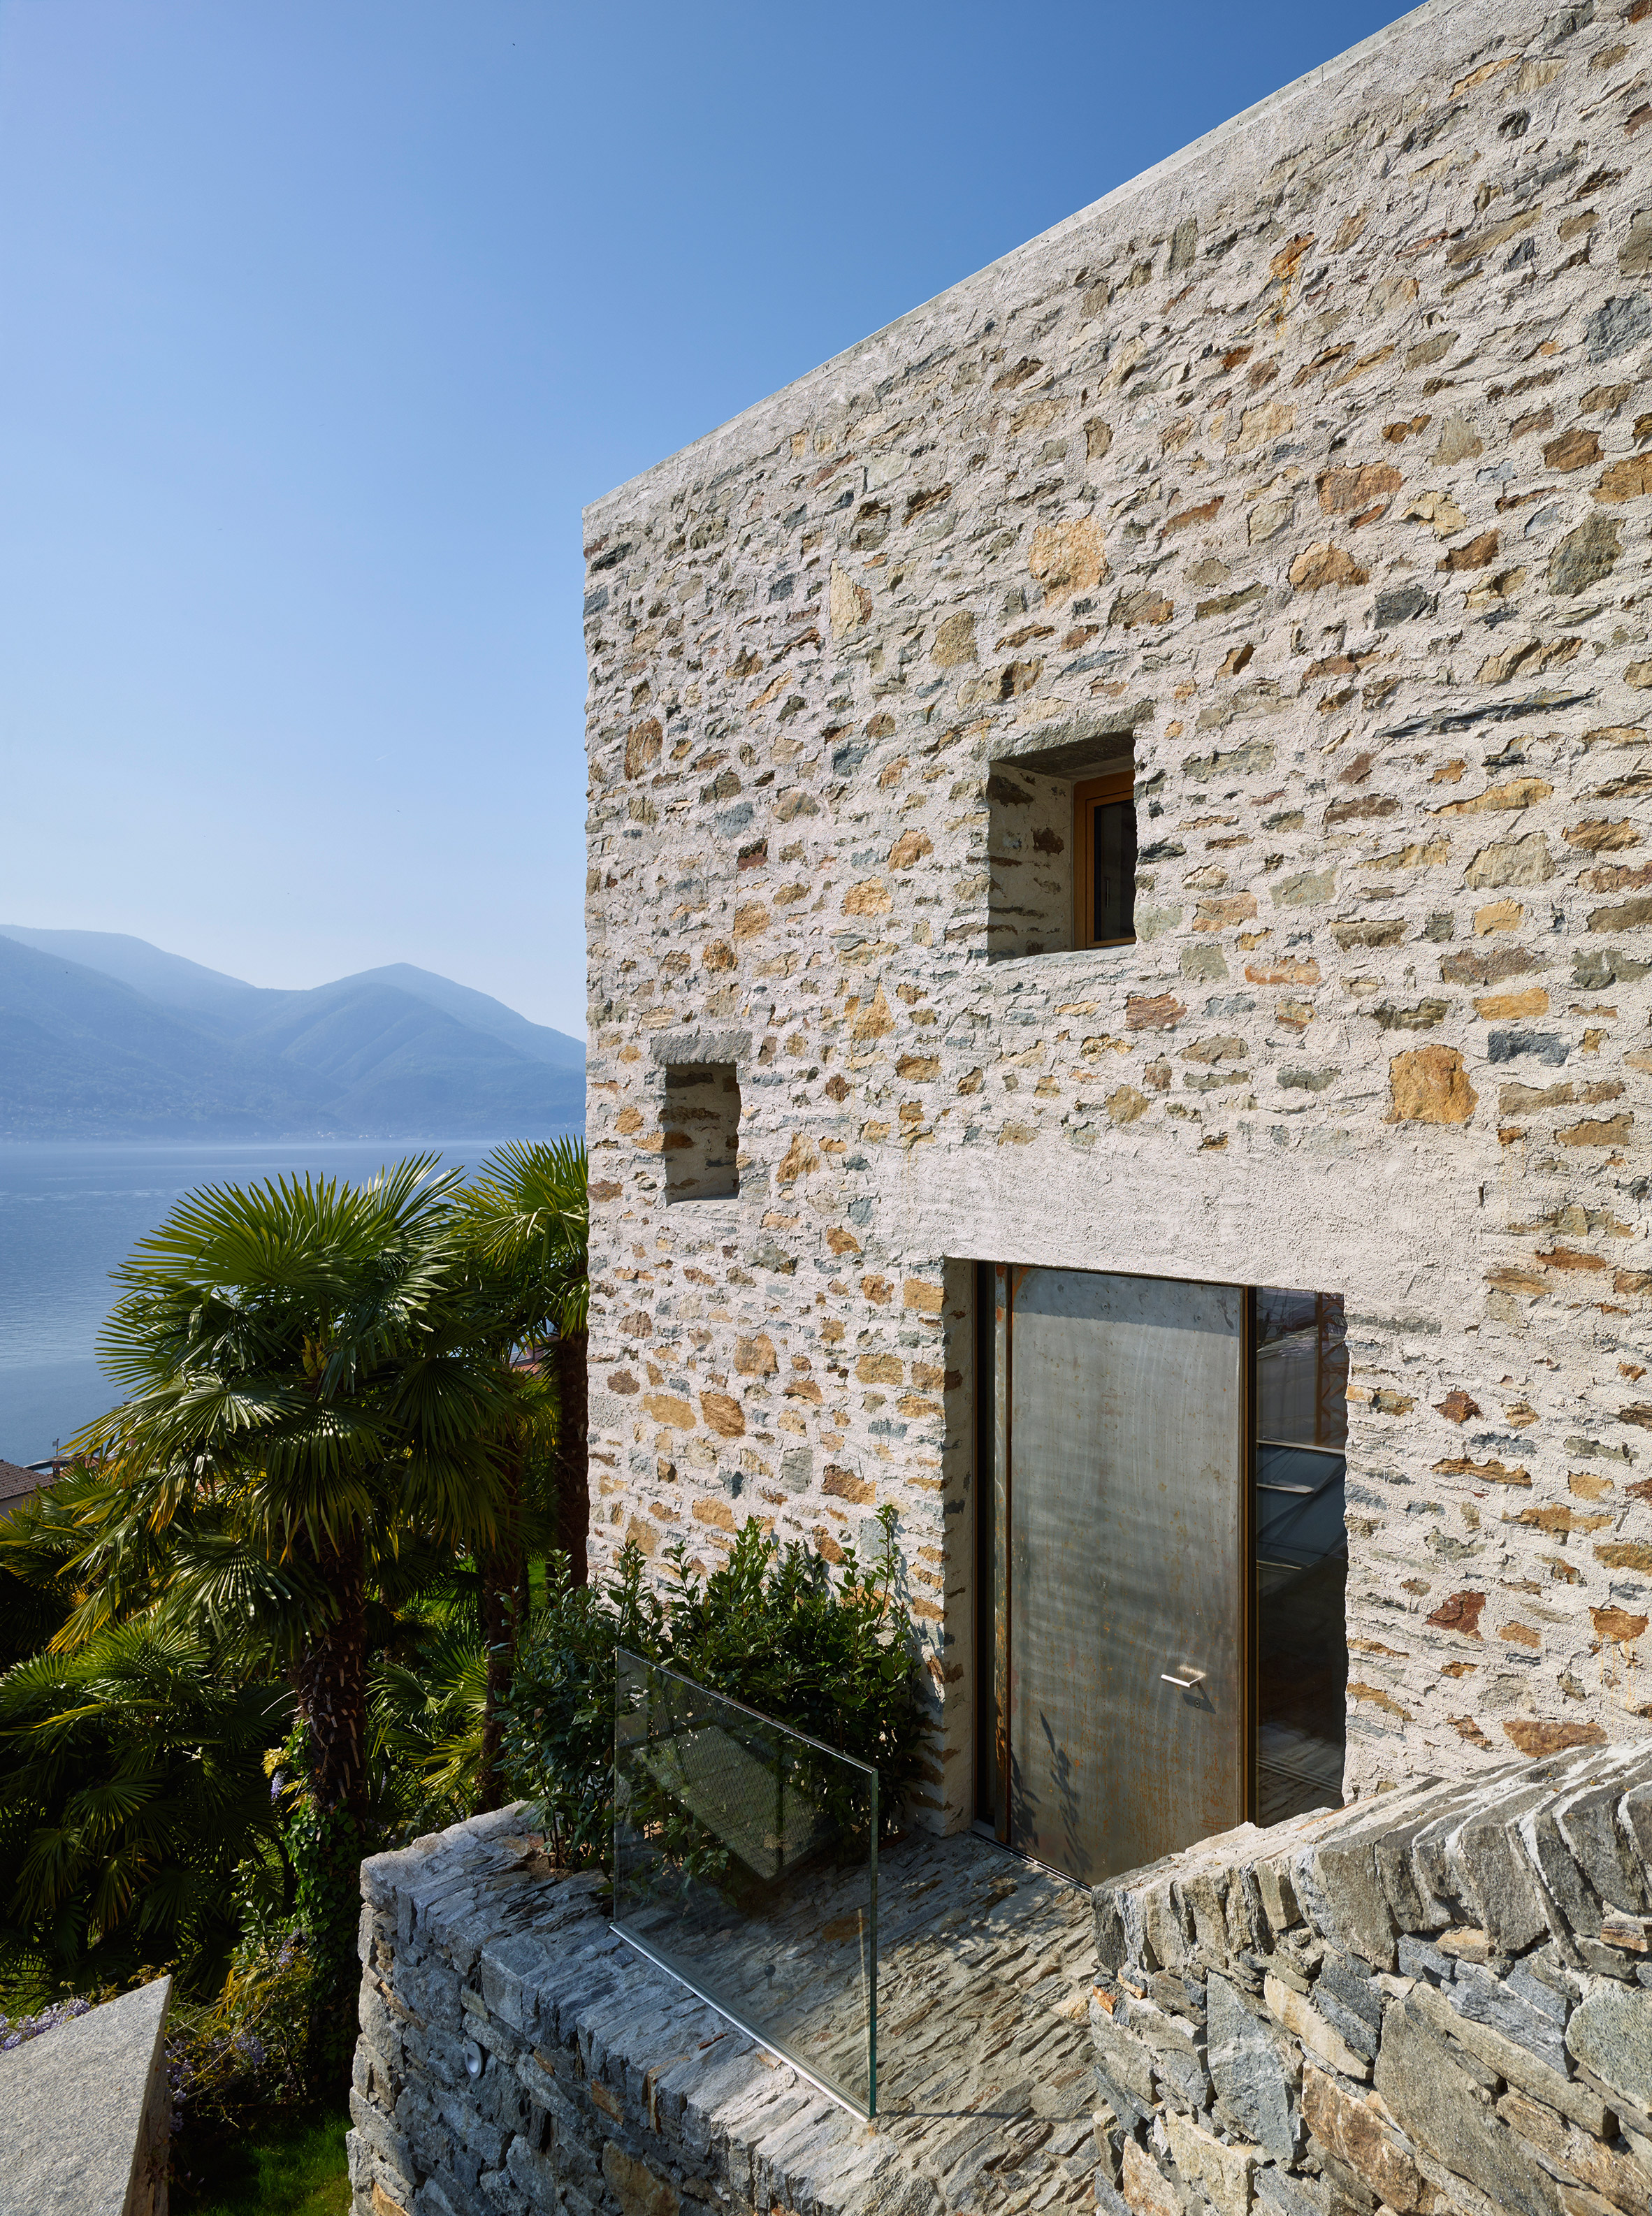 Wespi de Meuron Romeo Architetti uses local stone and plaster for lakeside house